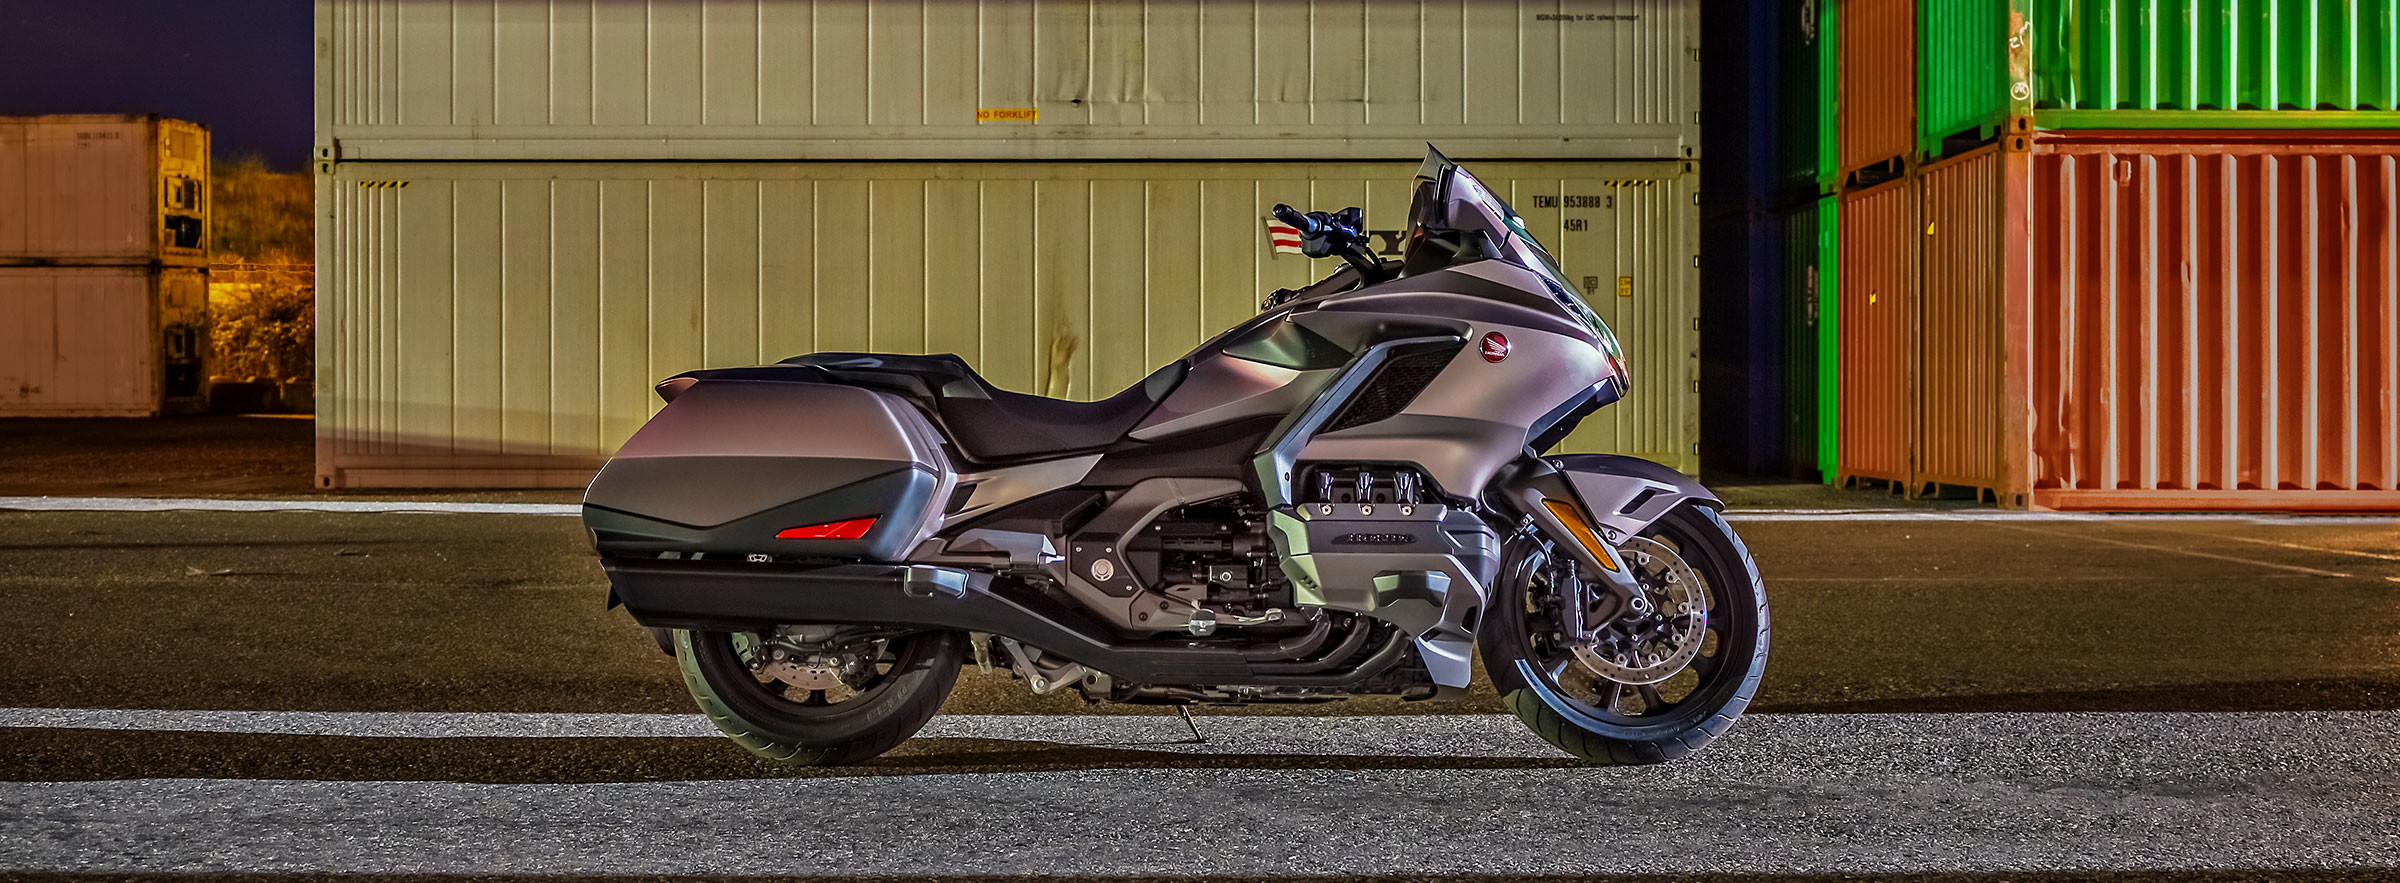 2018 Gold Wing